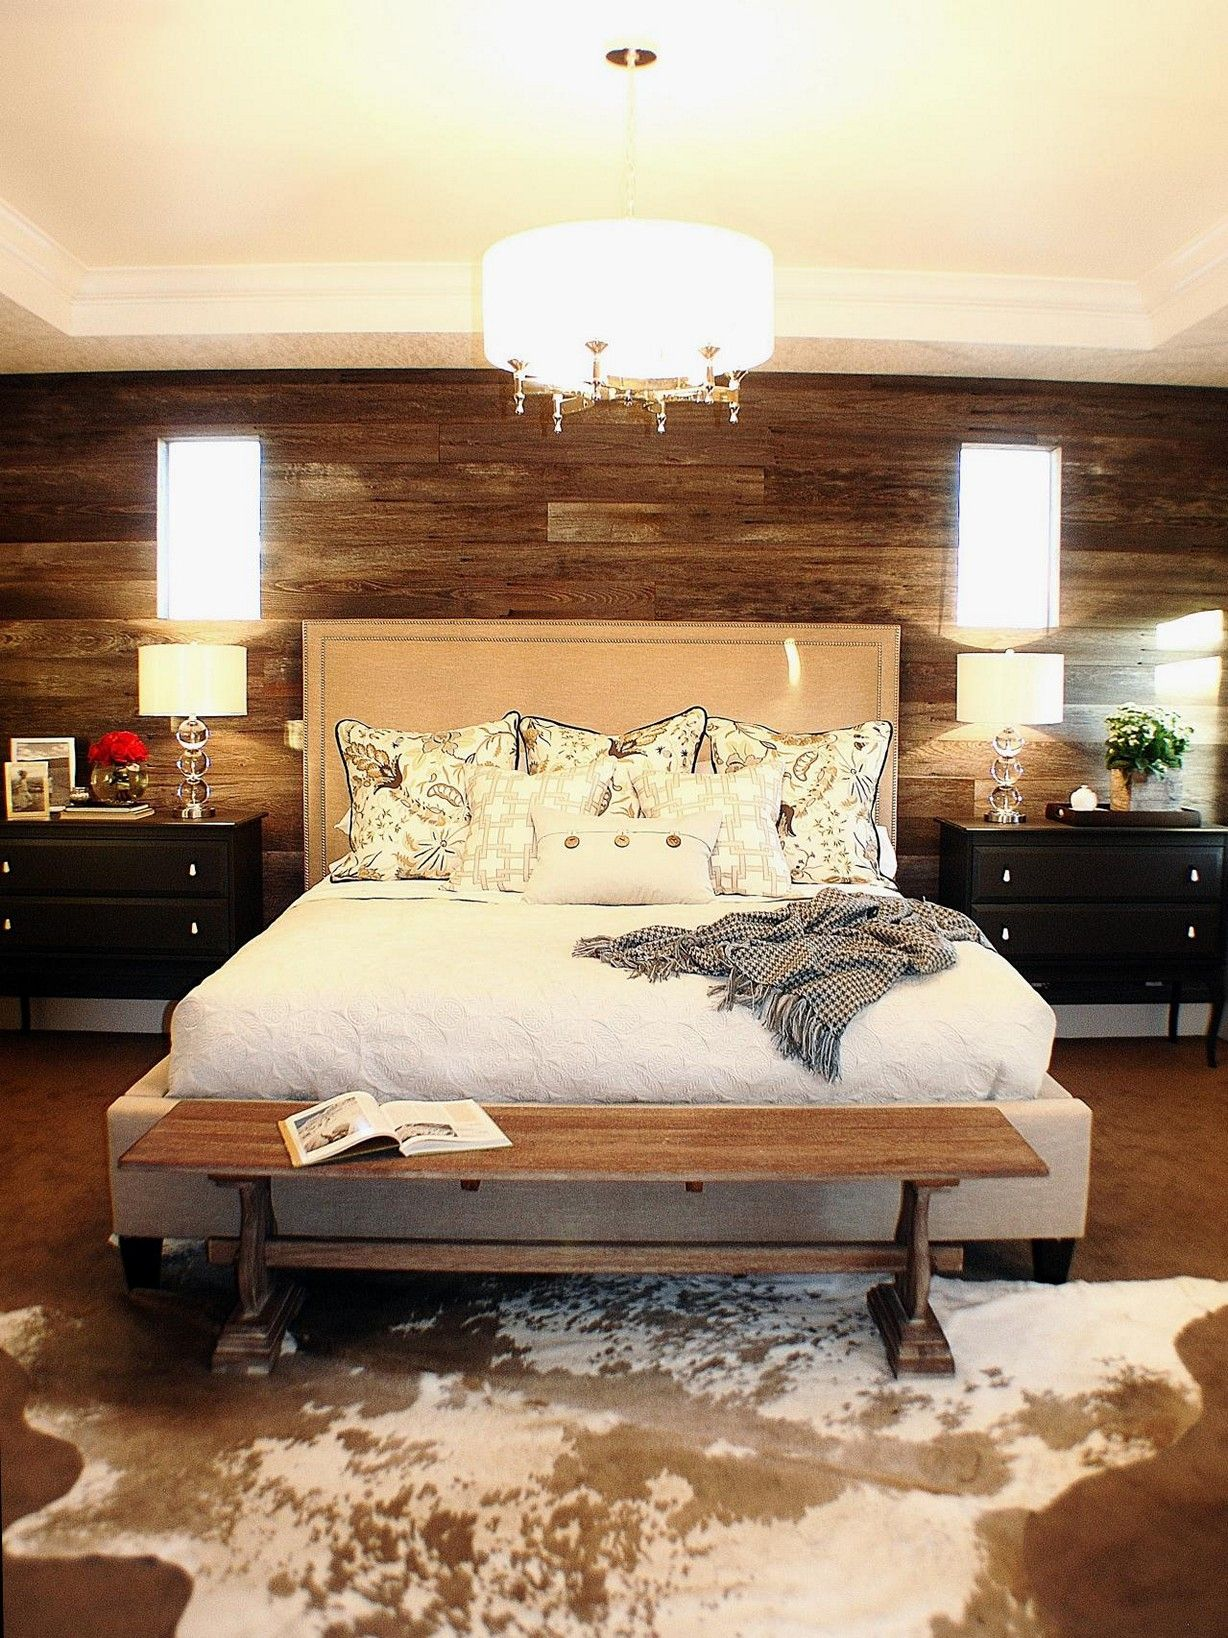 Cowhide is a thought of as a traditional western accent but with